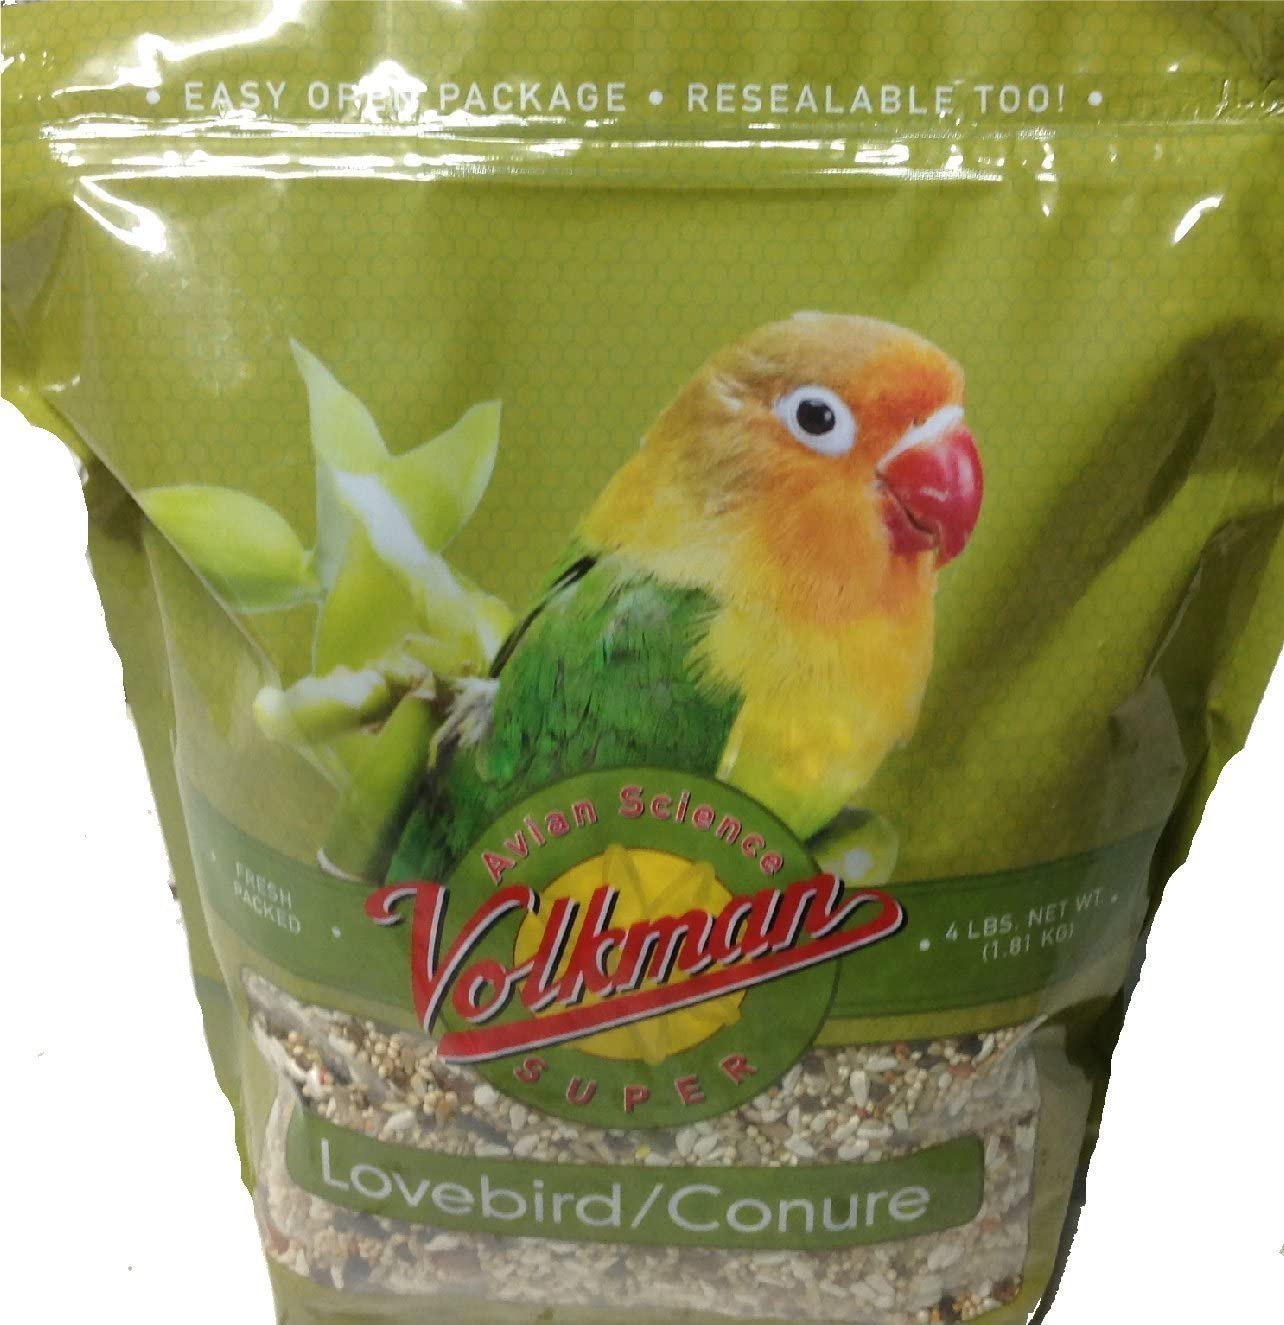 Volkman Avian Science Super Lovebird & Conure Diet Bird Food